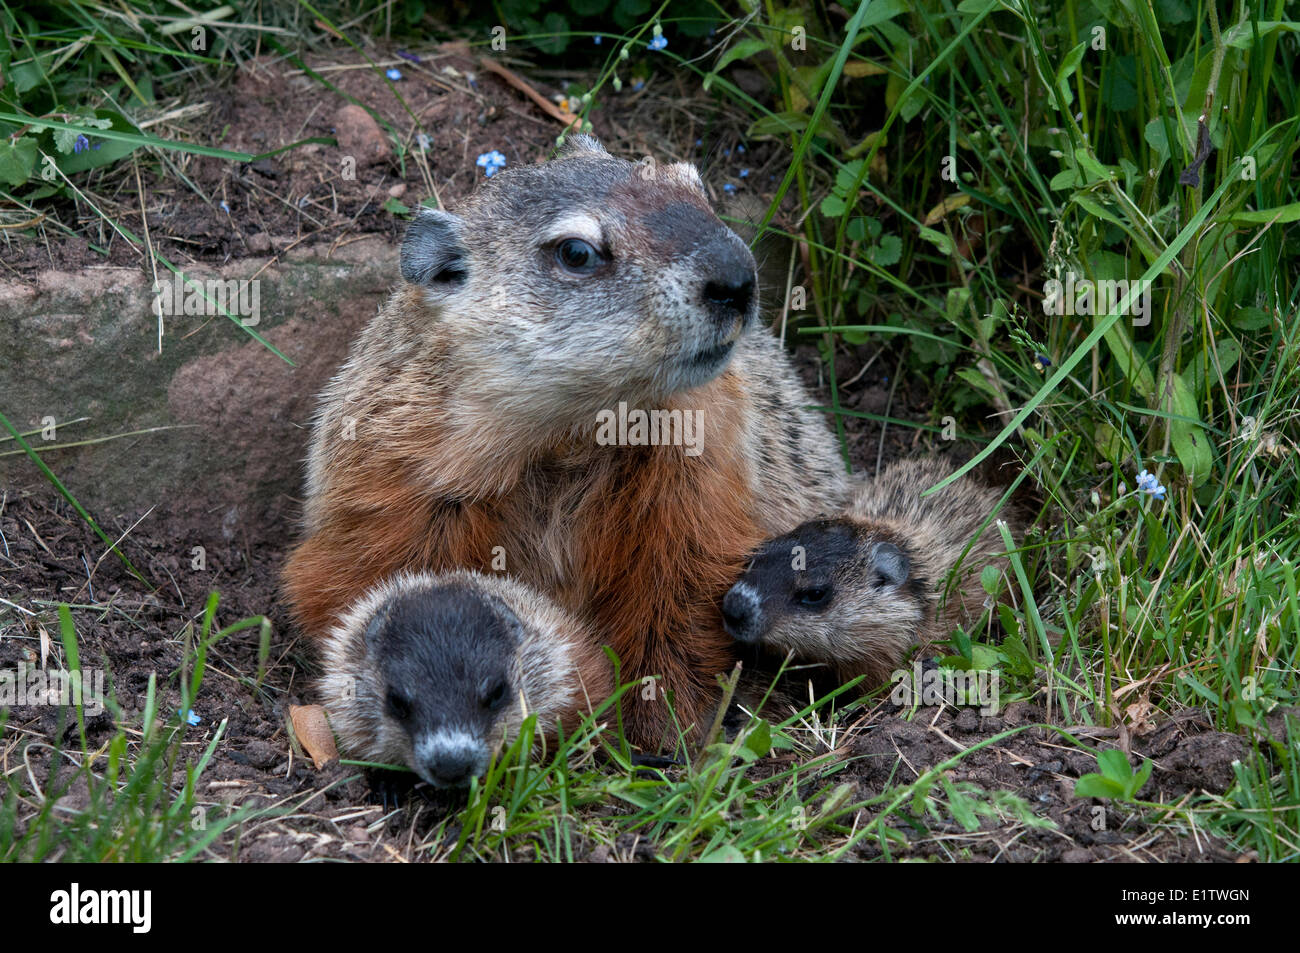 Groundhog with young (Marmota monax), also known as a woodchuck. Minnesota - Stock Image